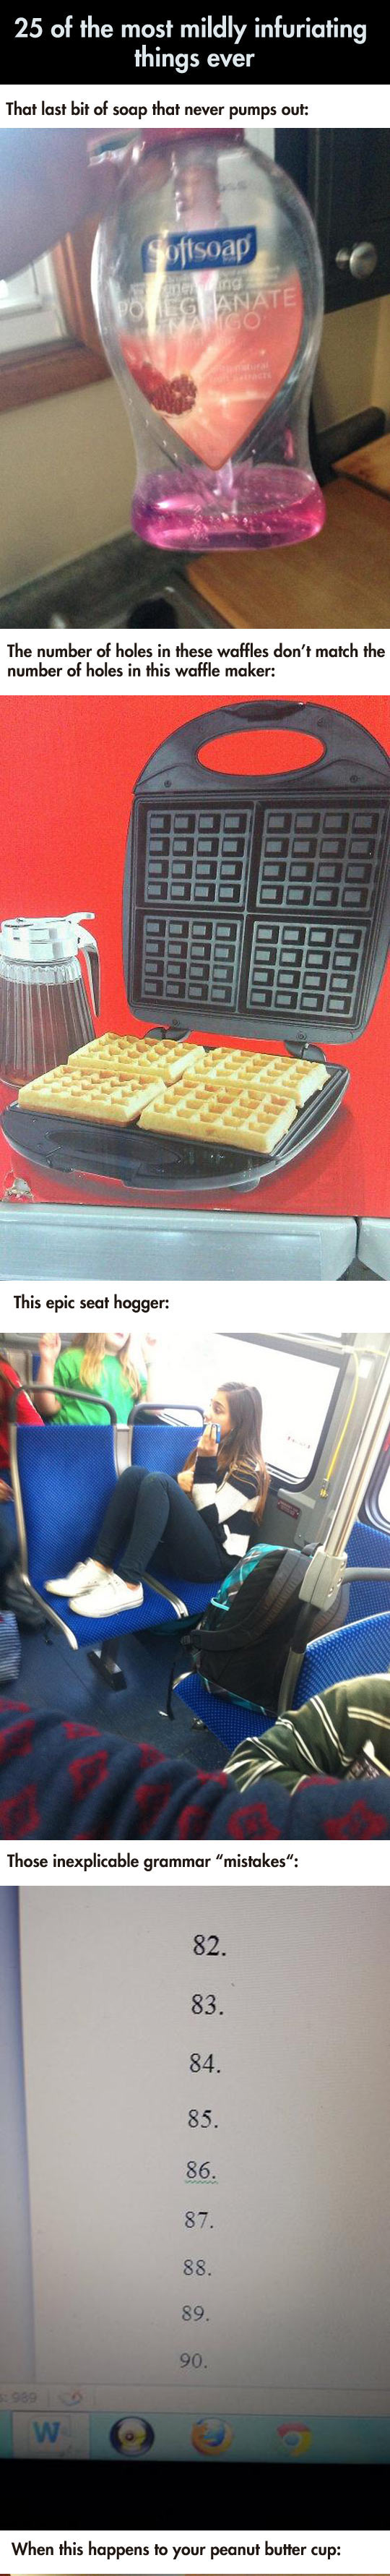 funny-Mildly-Infuriating-things-list-waffle-maker